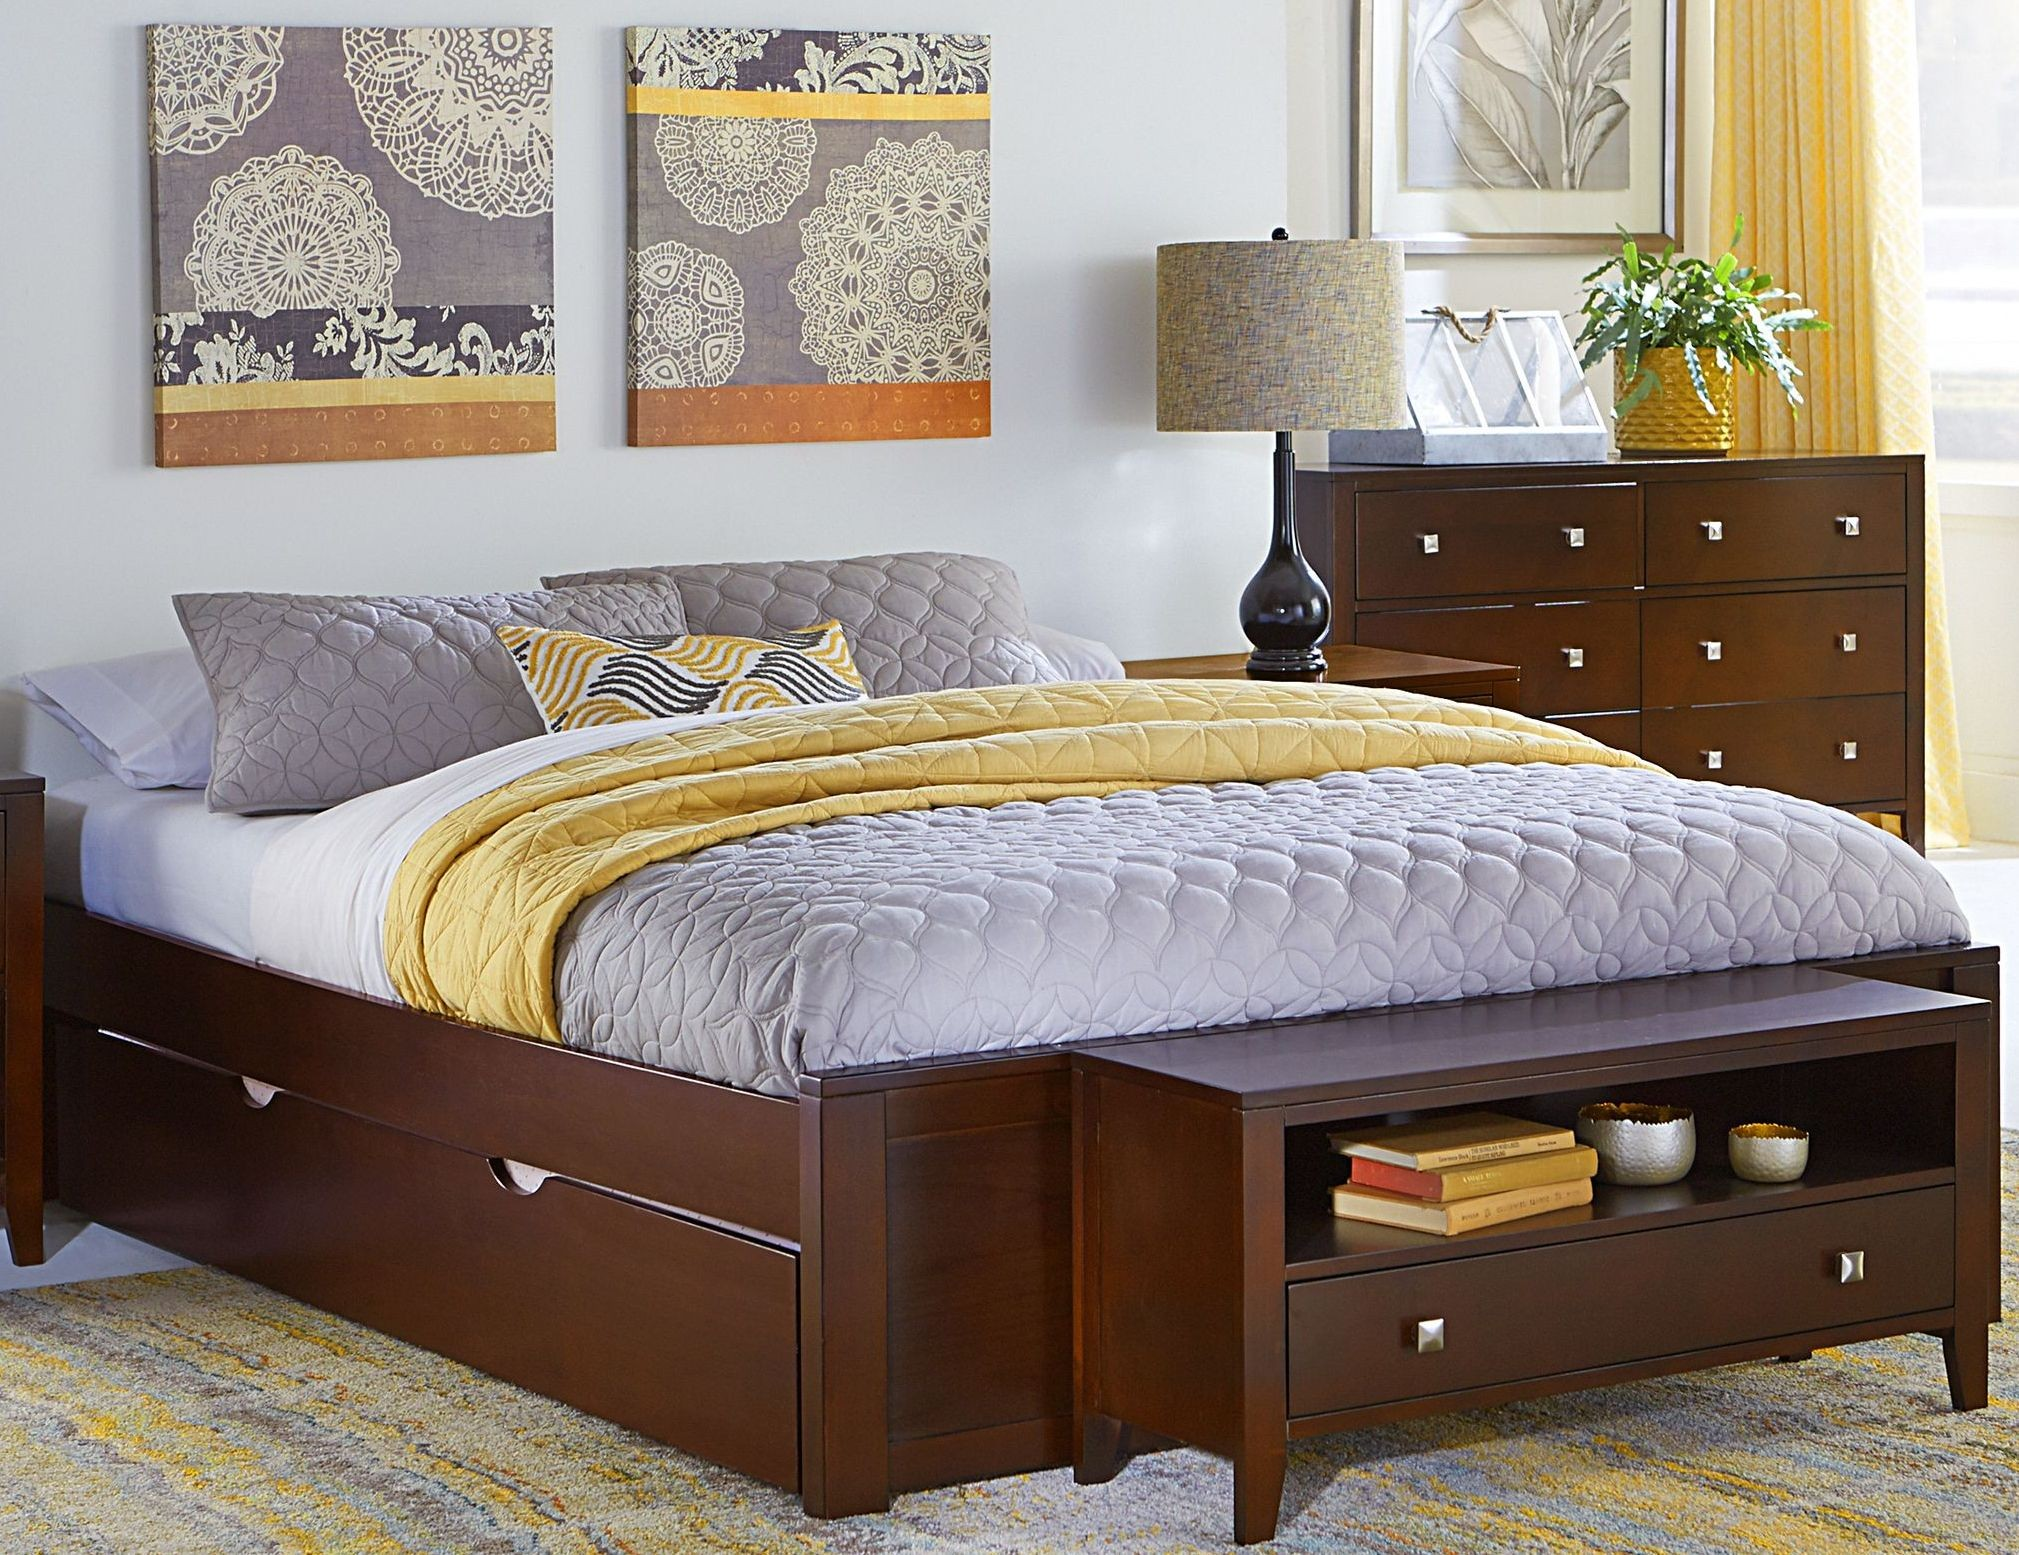 Queen Bed Trundle 28 Images Trundle Beds Lignicity